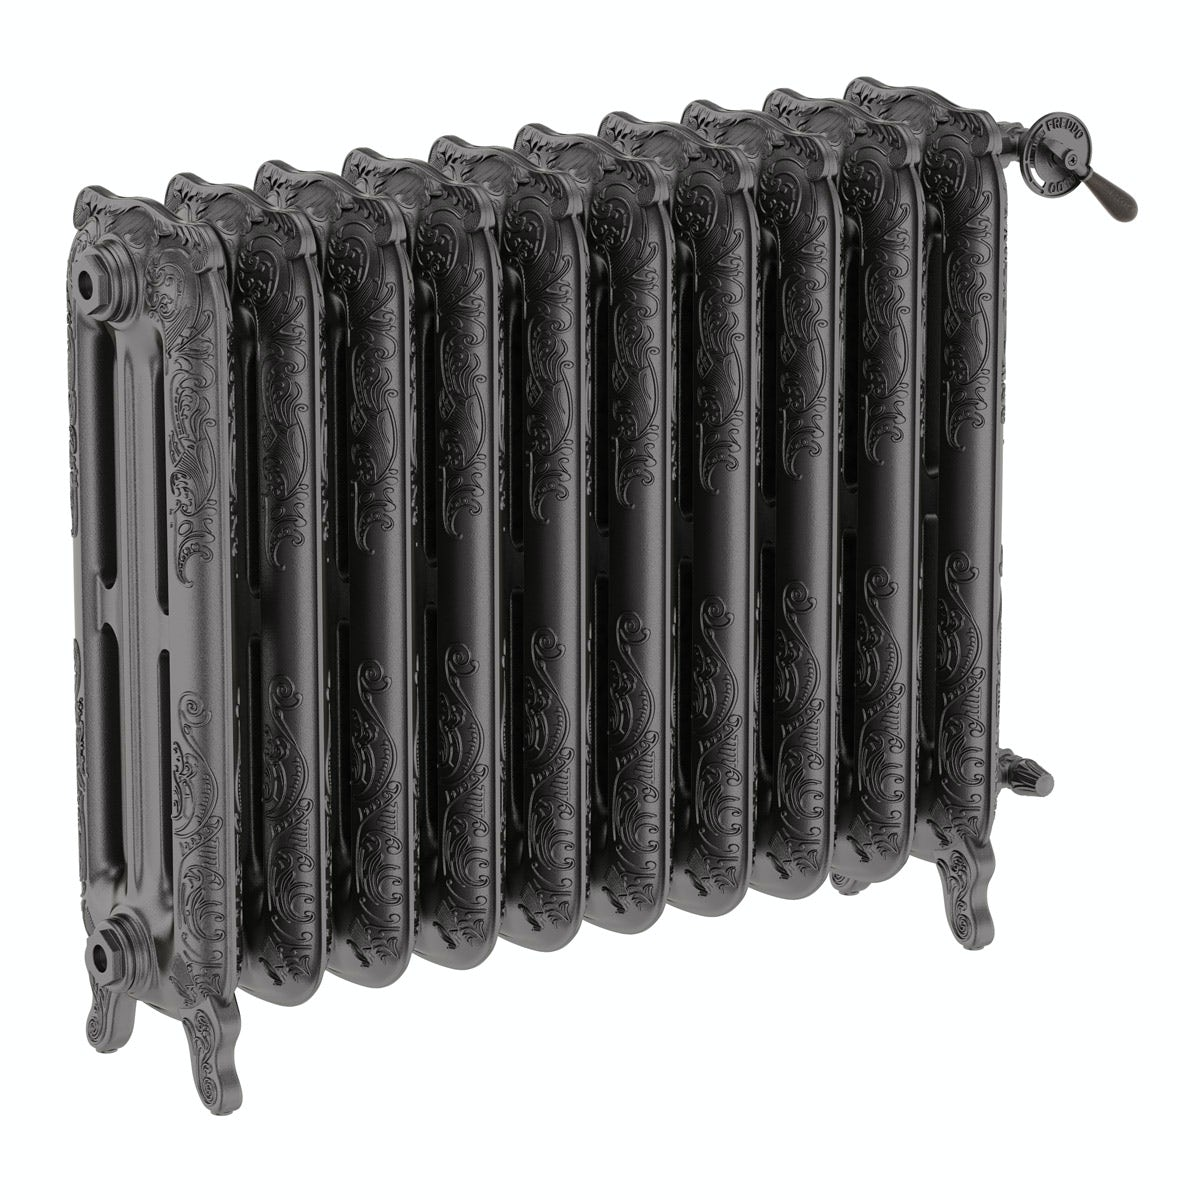 Terma Oxford raw metal freestanding cast iron radiator 710 x 852